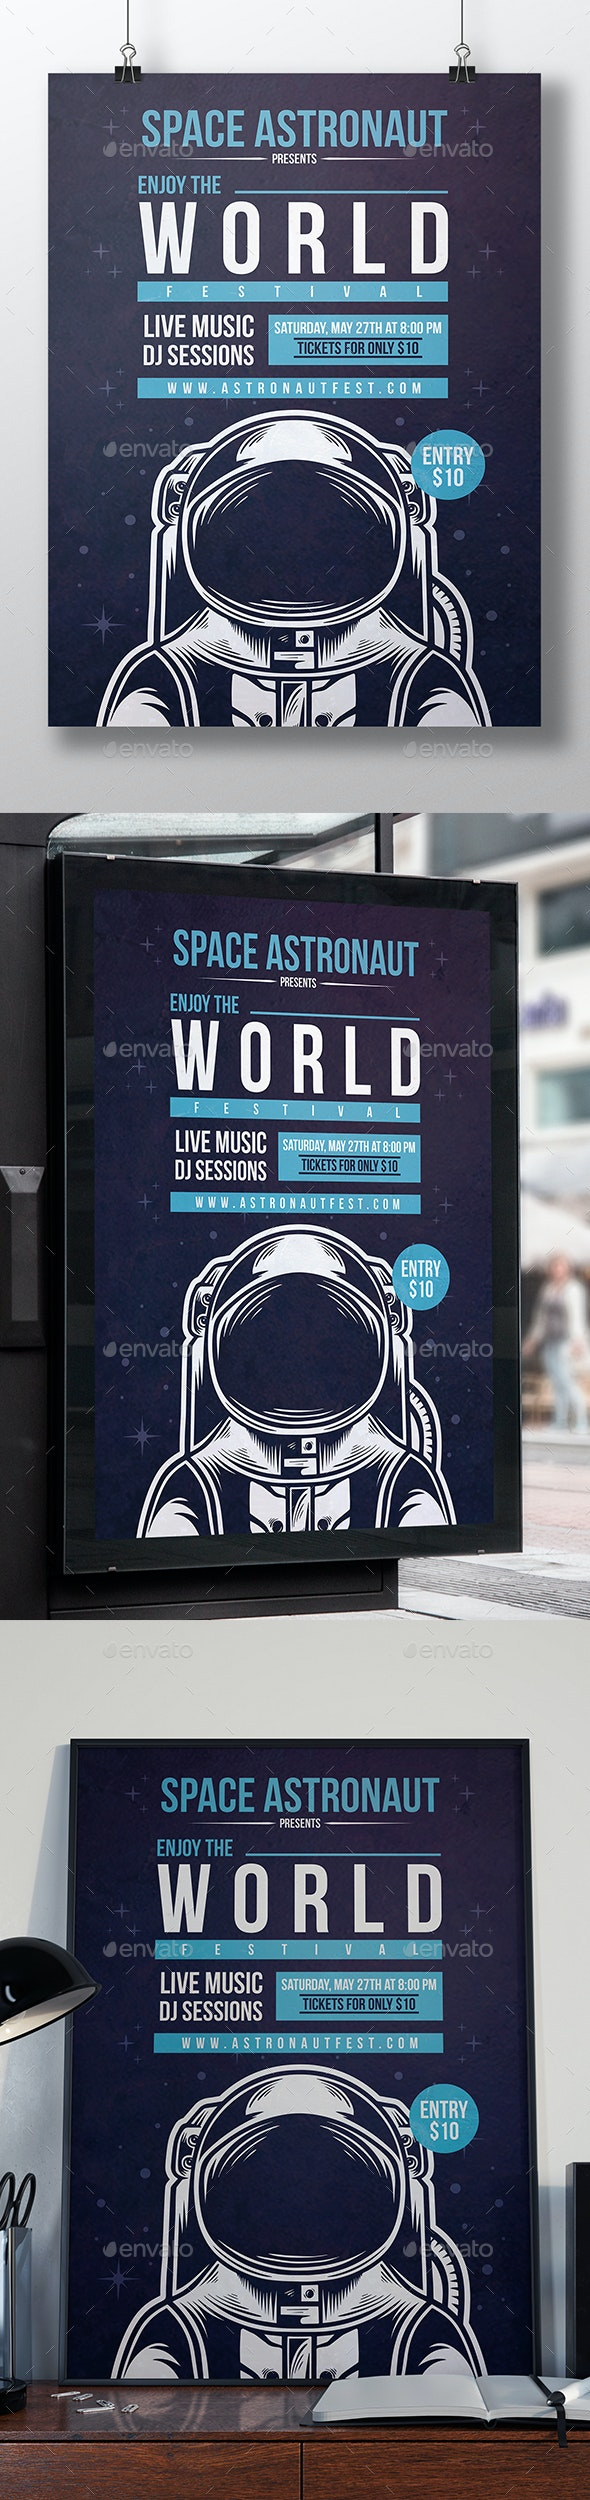 Galaxy Astronaut Flyer Template - Clubs & Parties Events